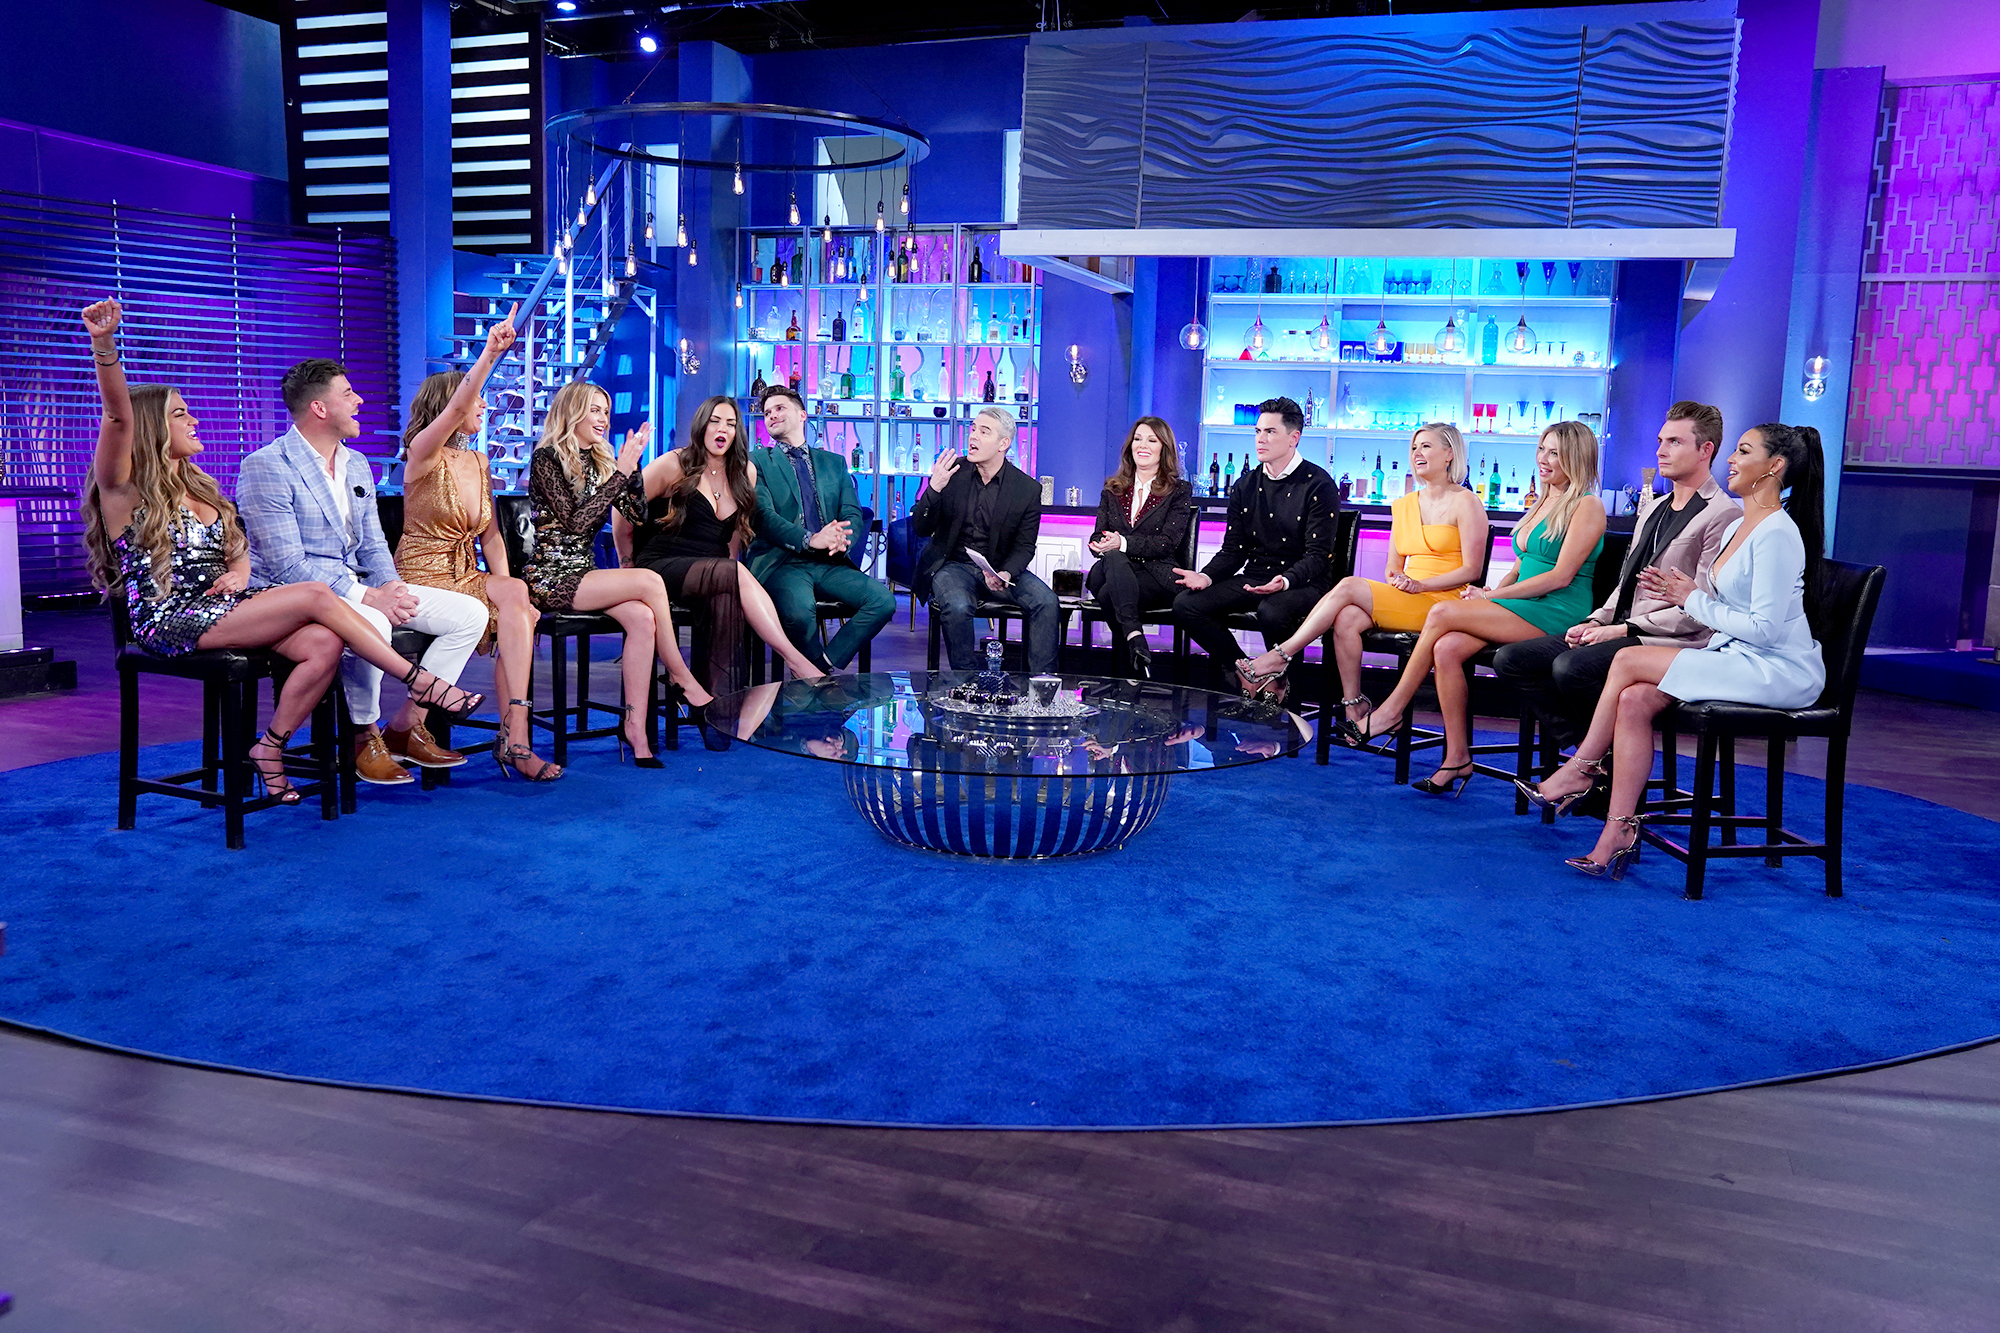 Vanderpump-Rules-cast